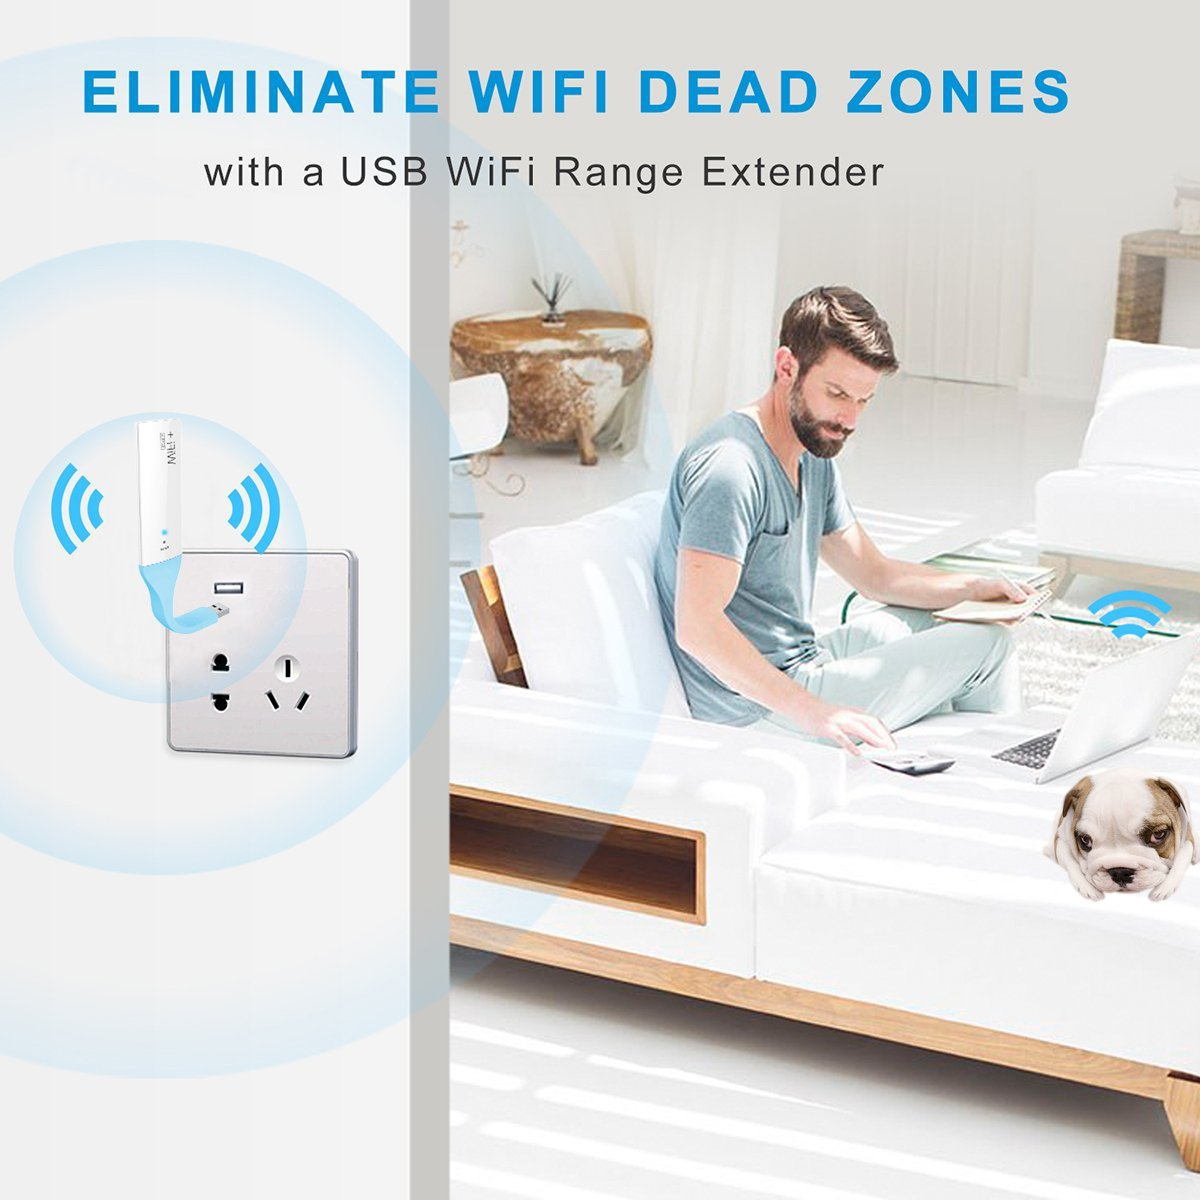 Amazon.com: WiFi Range Extender Astarye 300Mbps 180° Rotatable WiFi Booster USB Portable Wireless Repeater Router Signal Booster: MP3 Players & Accessories